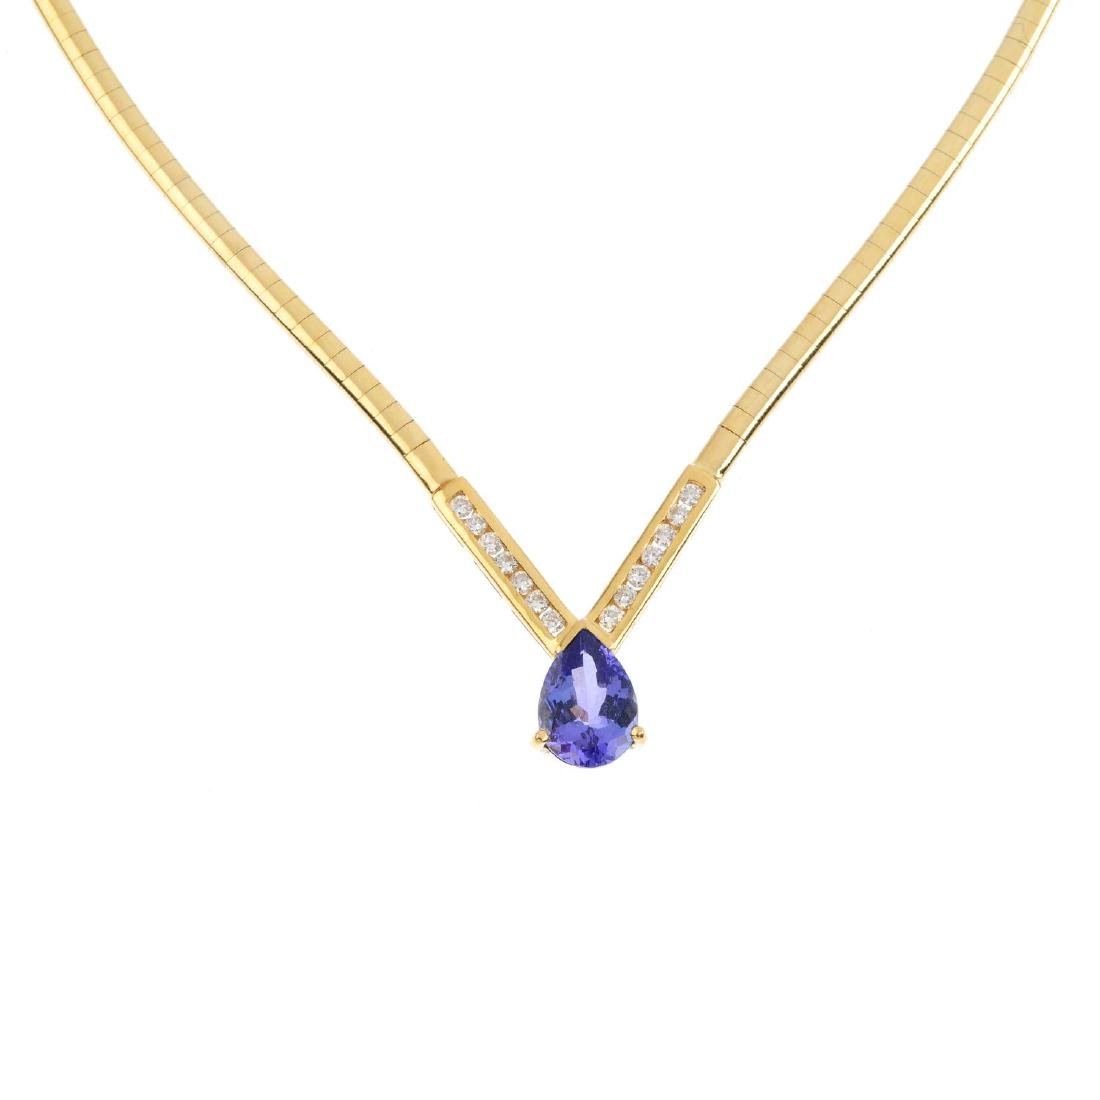 An 18ct gold tanzanite and diamond necklace. The